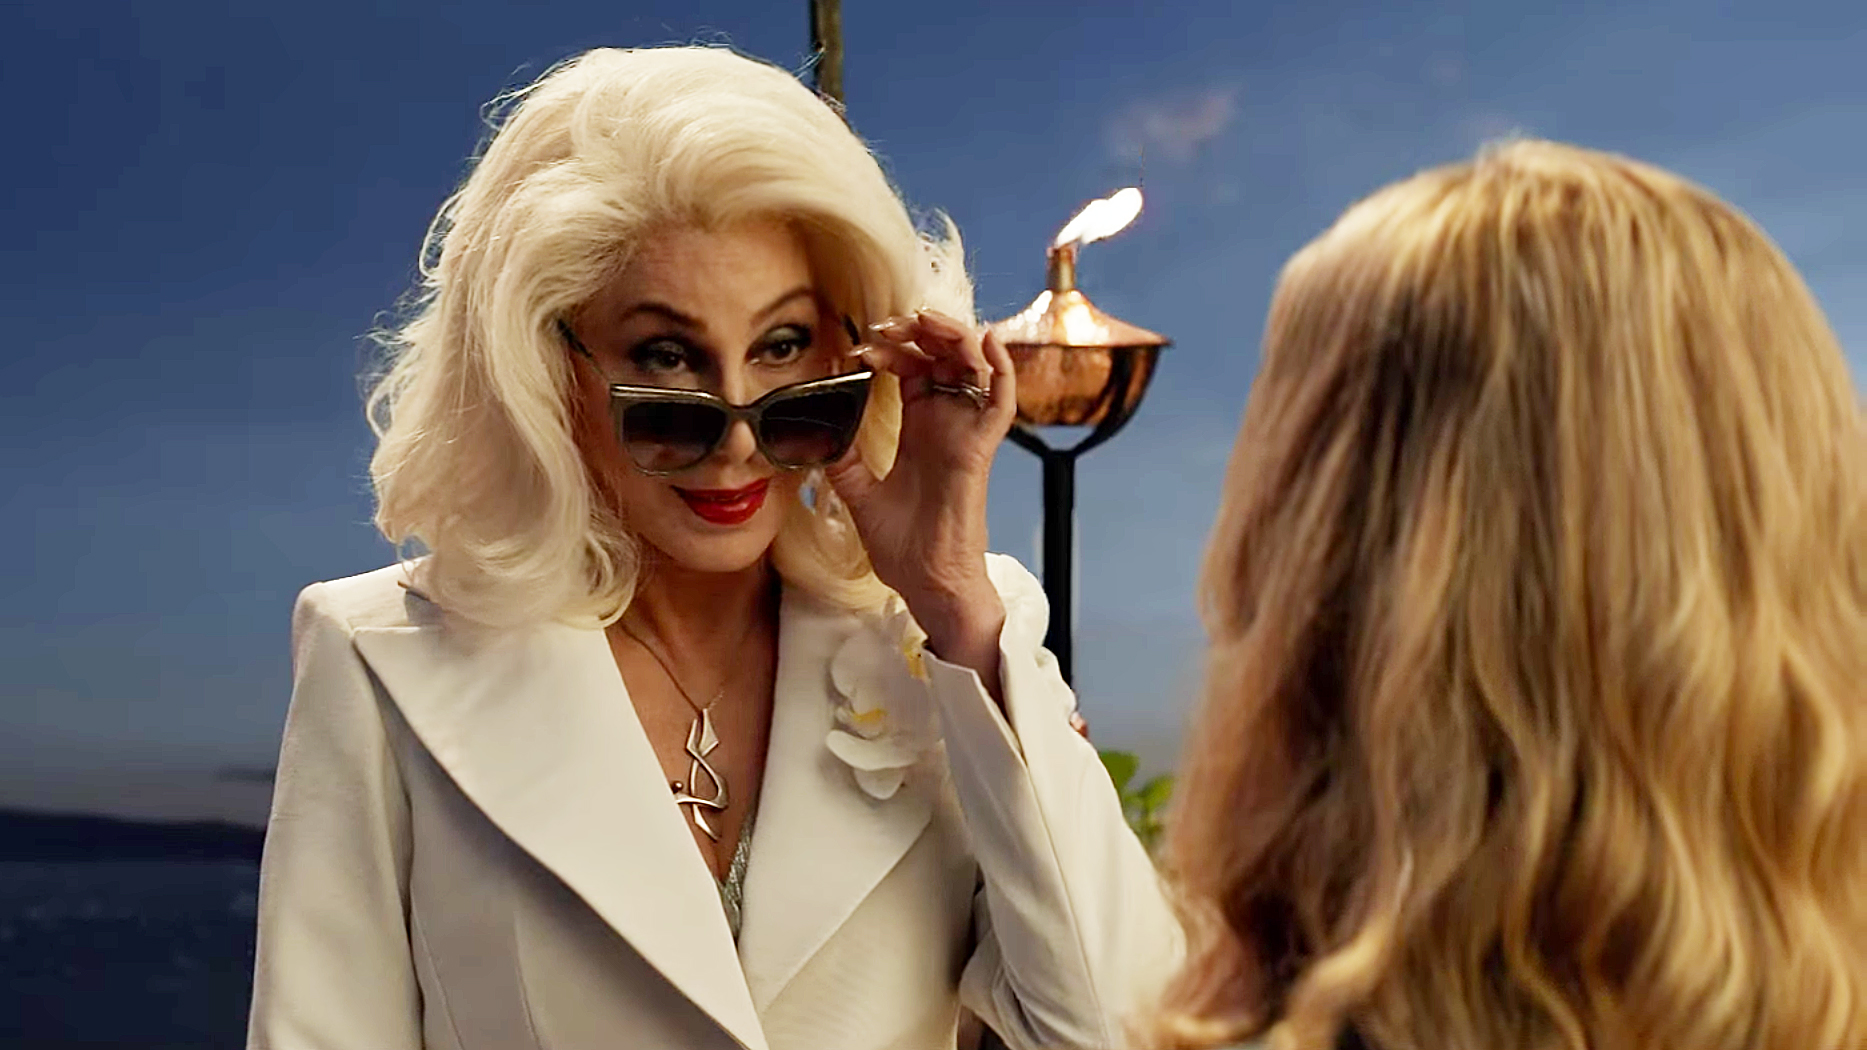 """""""I'll Wait And Watch This When It Hits Netflix"""": Check Out The Latest Trailer For """"Mamma Mia!  Here We Go Again"""""""